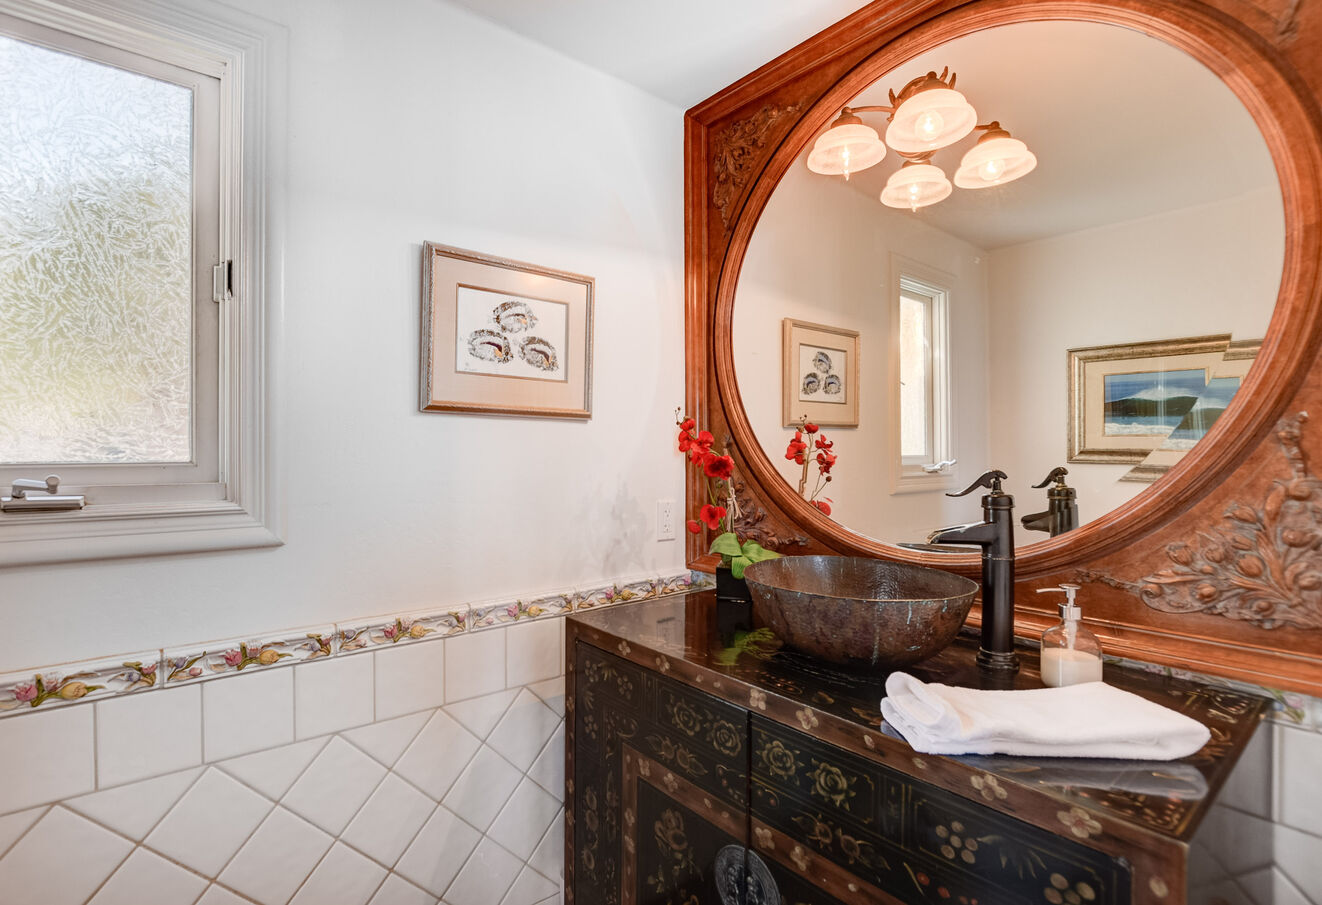 The first floor half bath features a beautiful vanity and sink